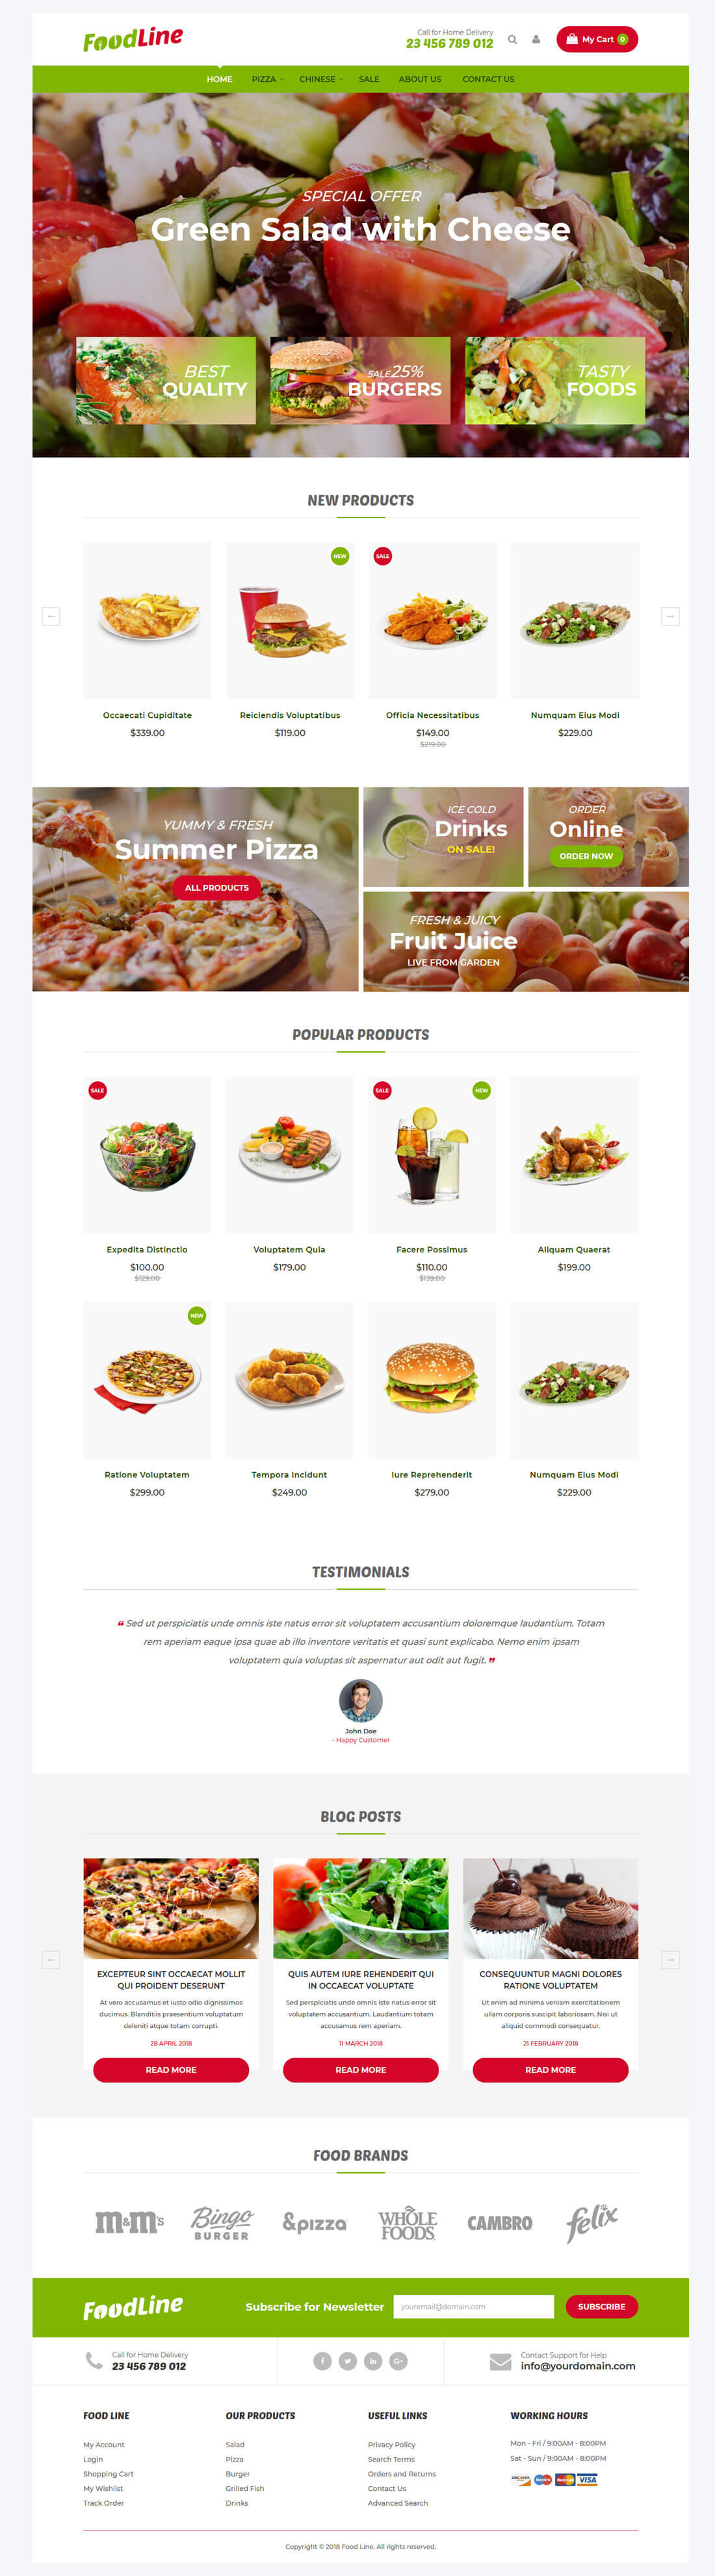 Foodline - Home Page Overview